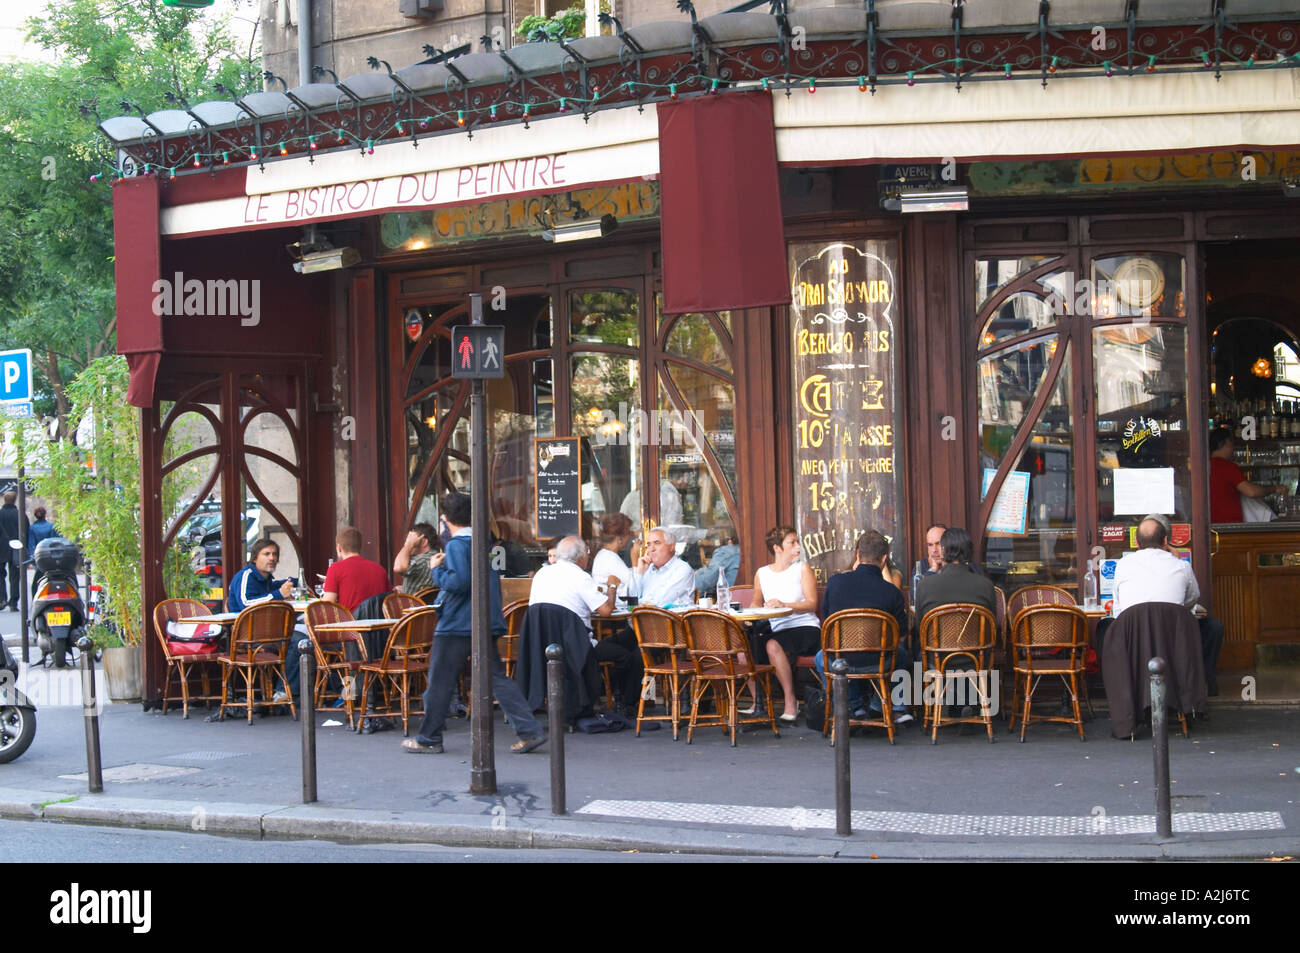 le bistrot du peintre cafe bar terrasse terasse outside seating on stock photo royalty free. Black Bedroom Furniture Sets. Home Design Ideas